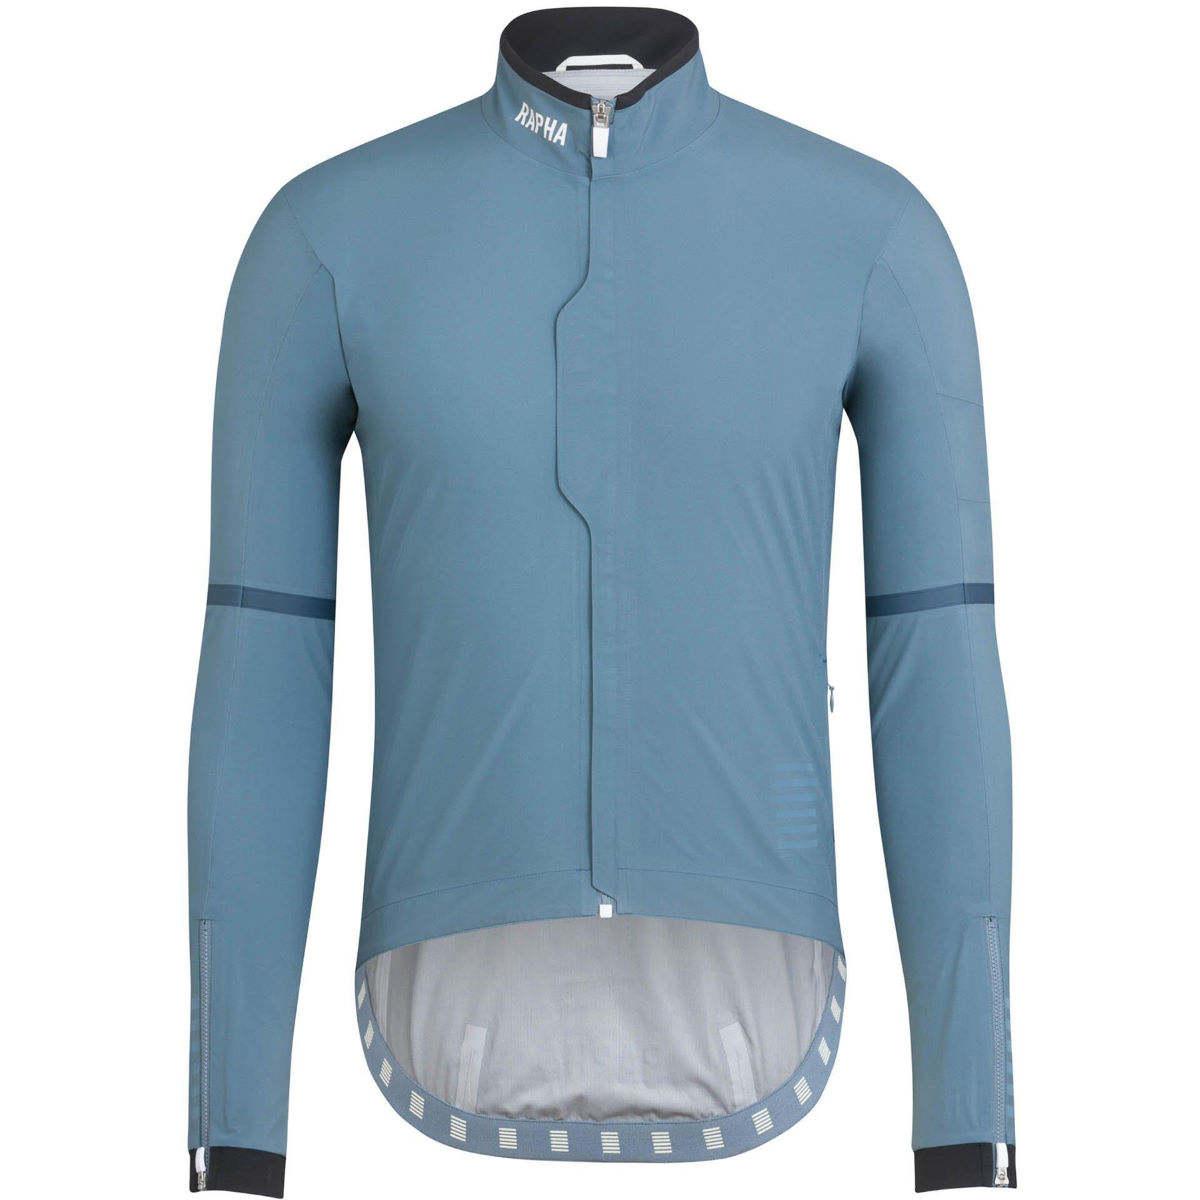 Chaqueta Rapha Pro Team Race Cape - Chaquetas